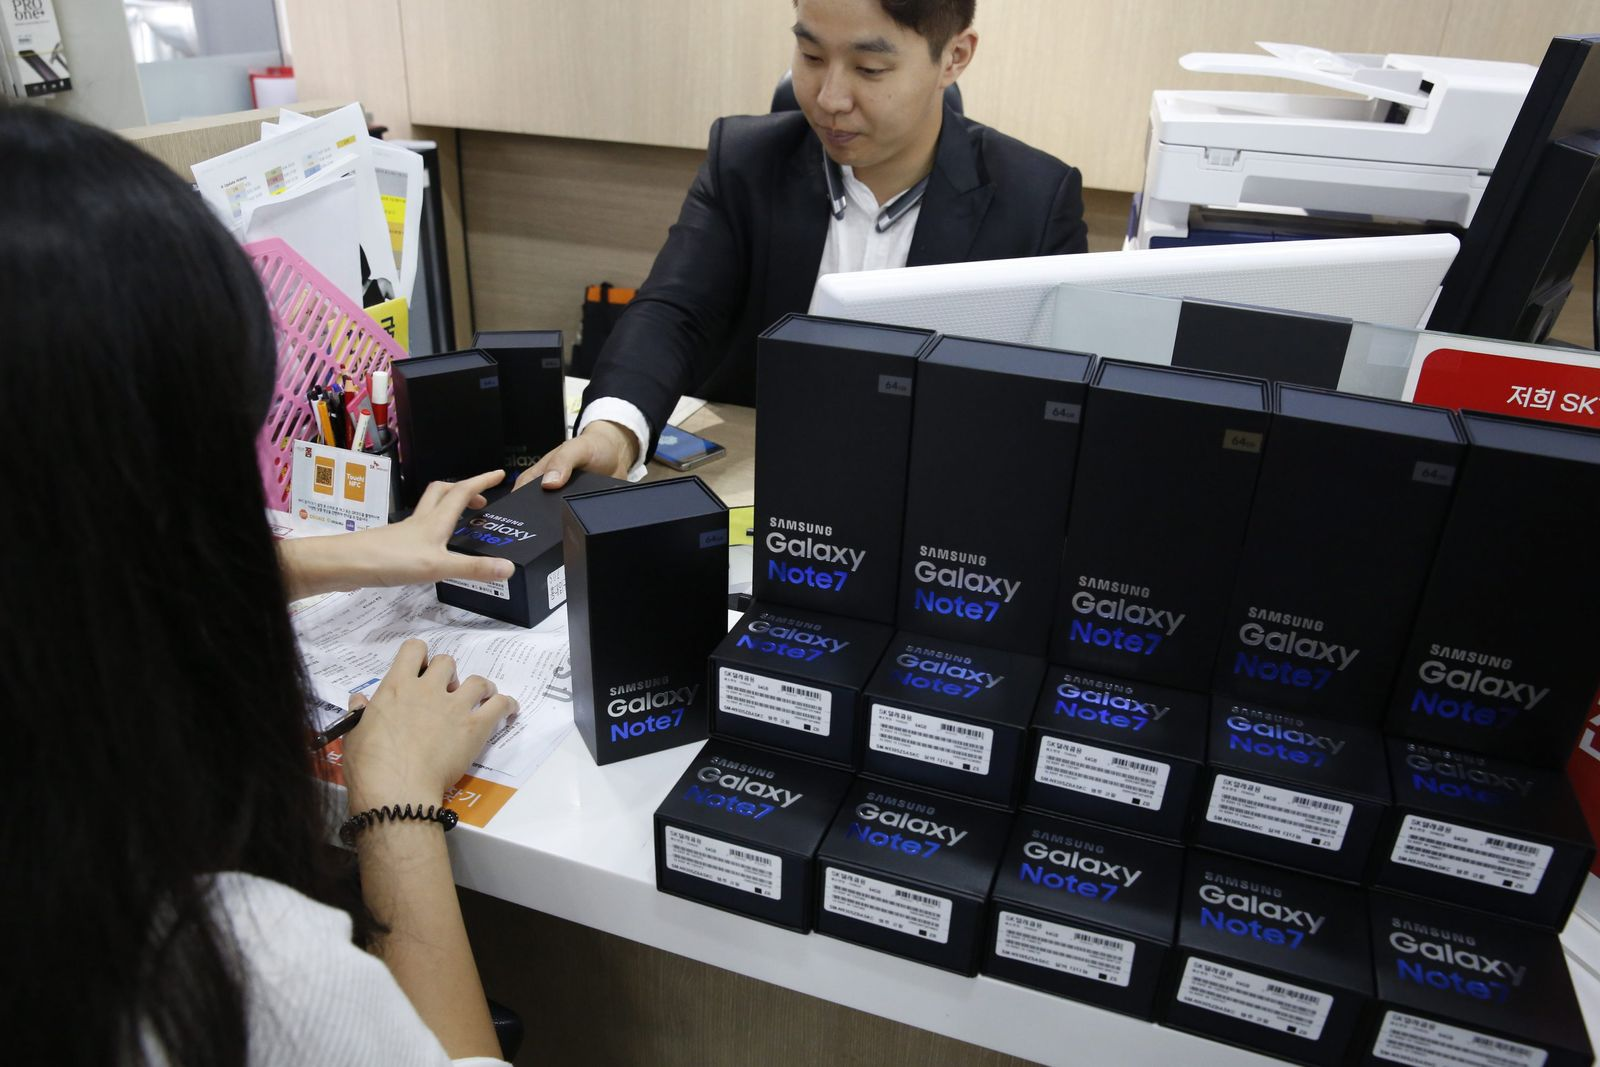 Samsung begins to replace faulty Galaxy Note 7